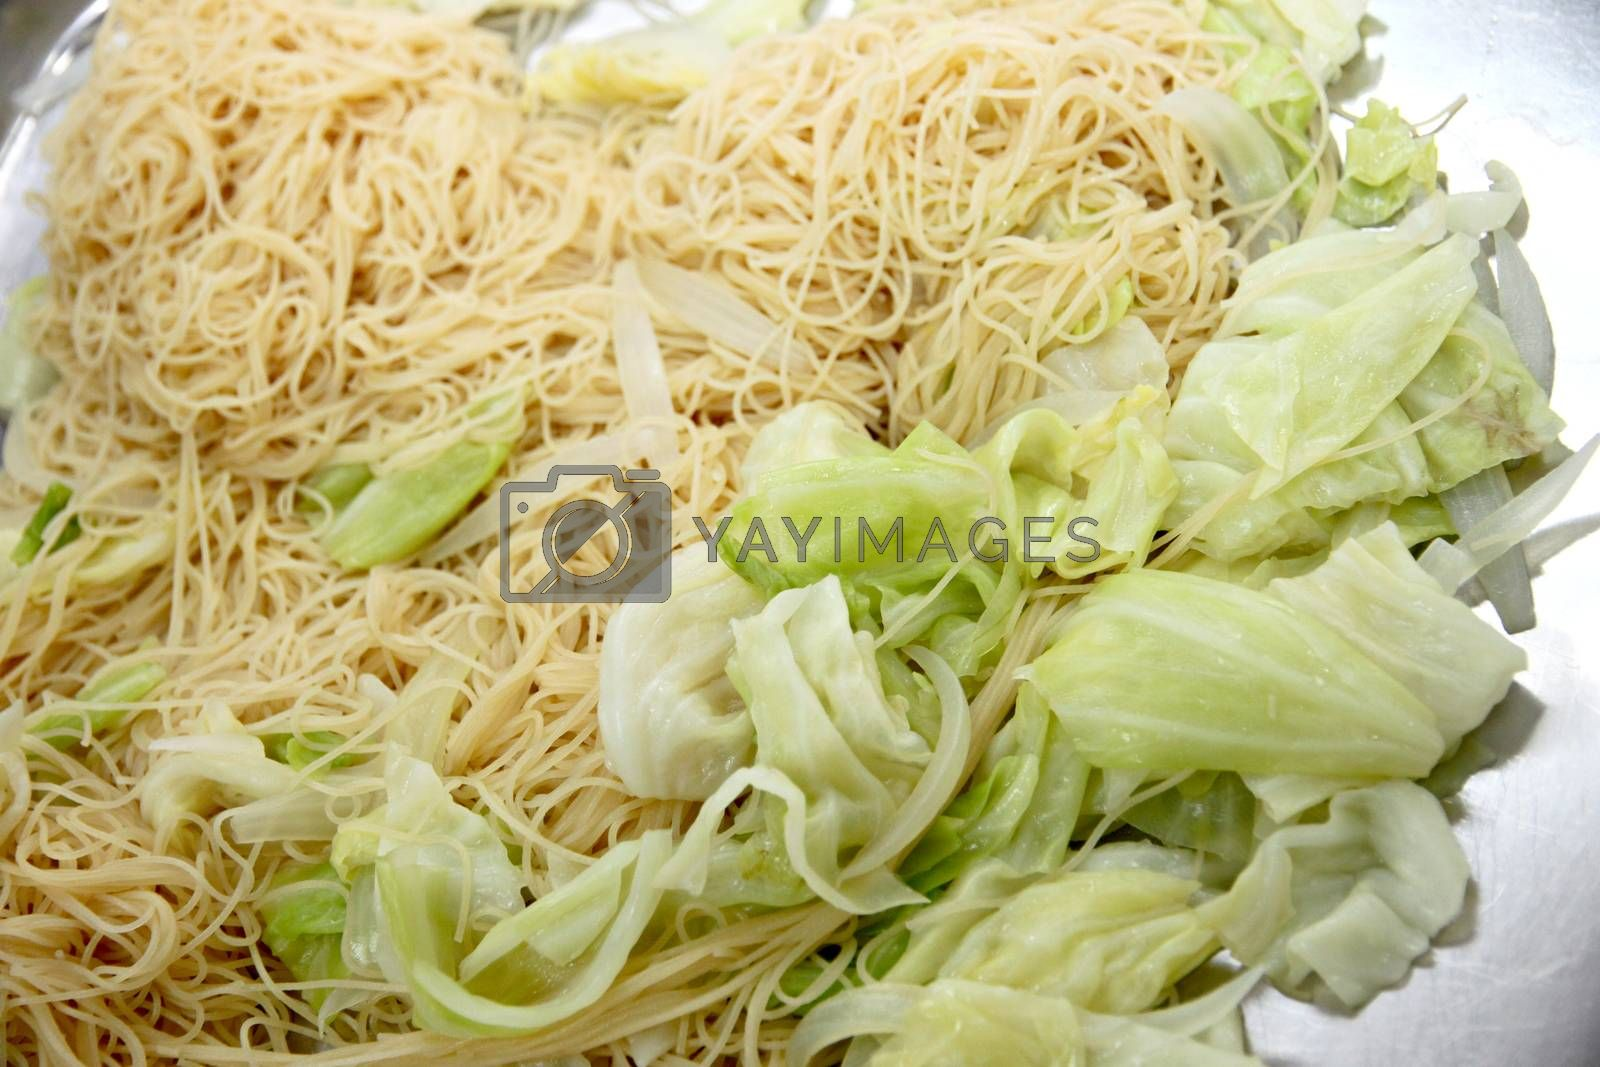 The Picture of Noodles mixed with vegetables in a pan.